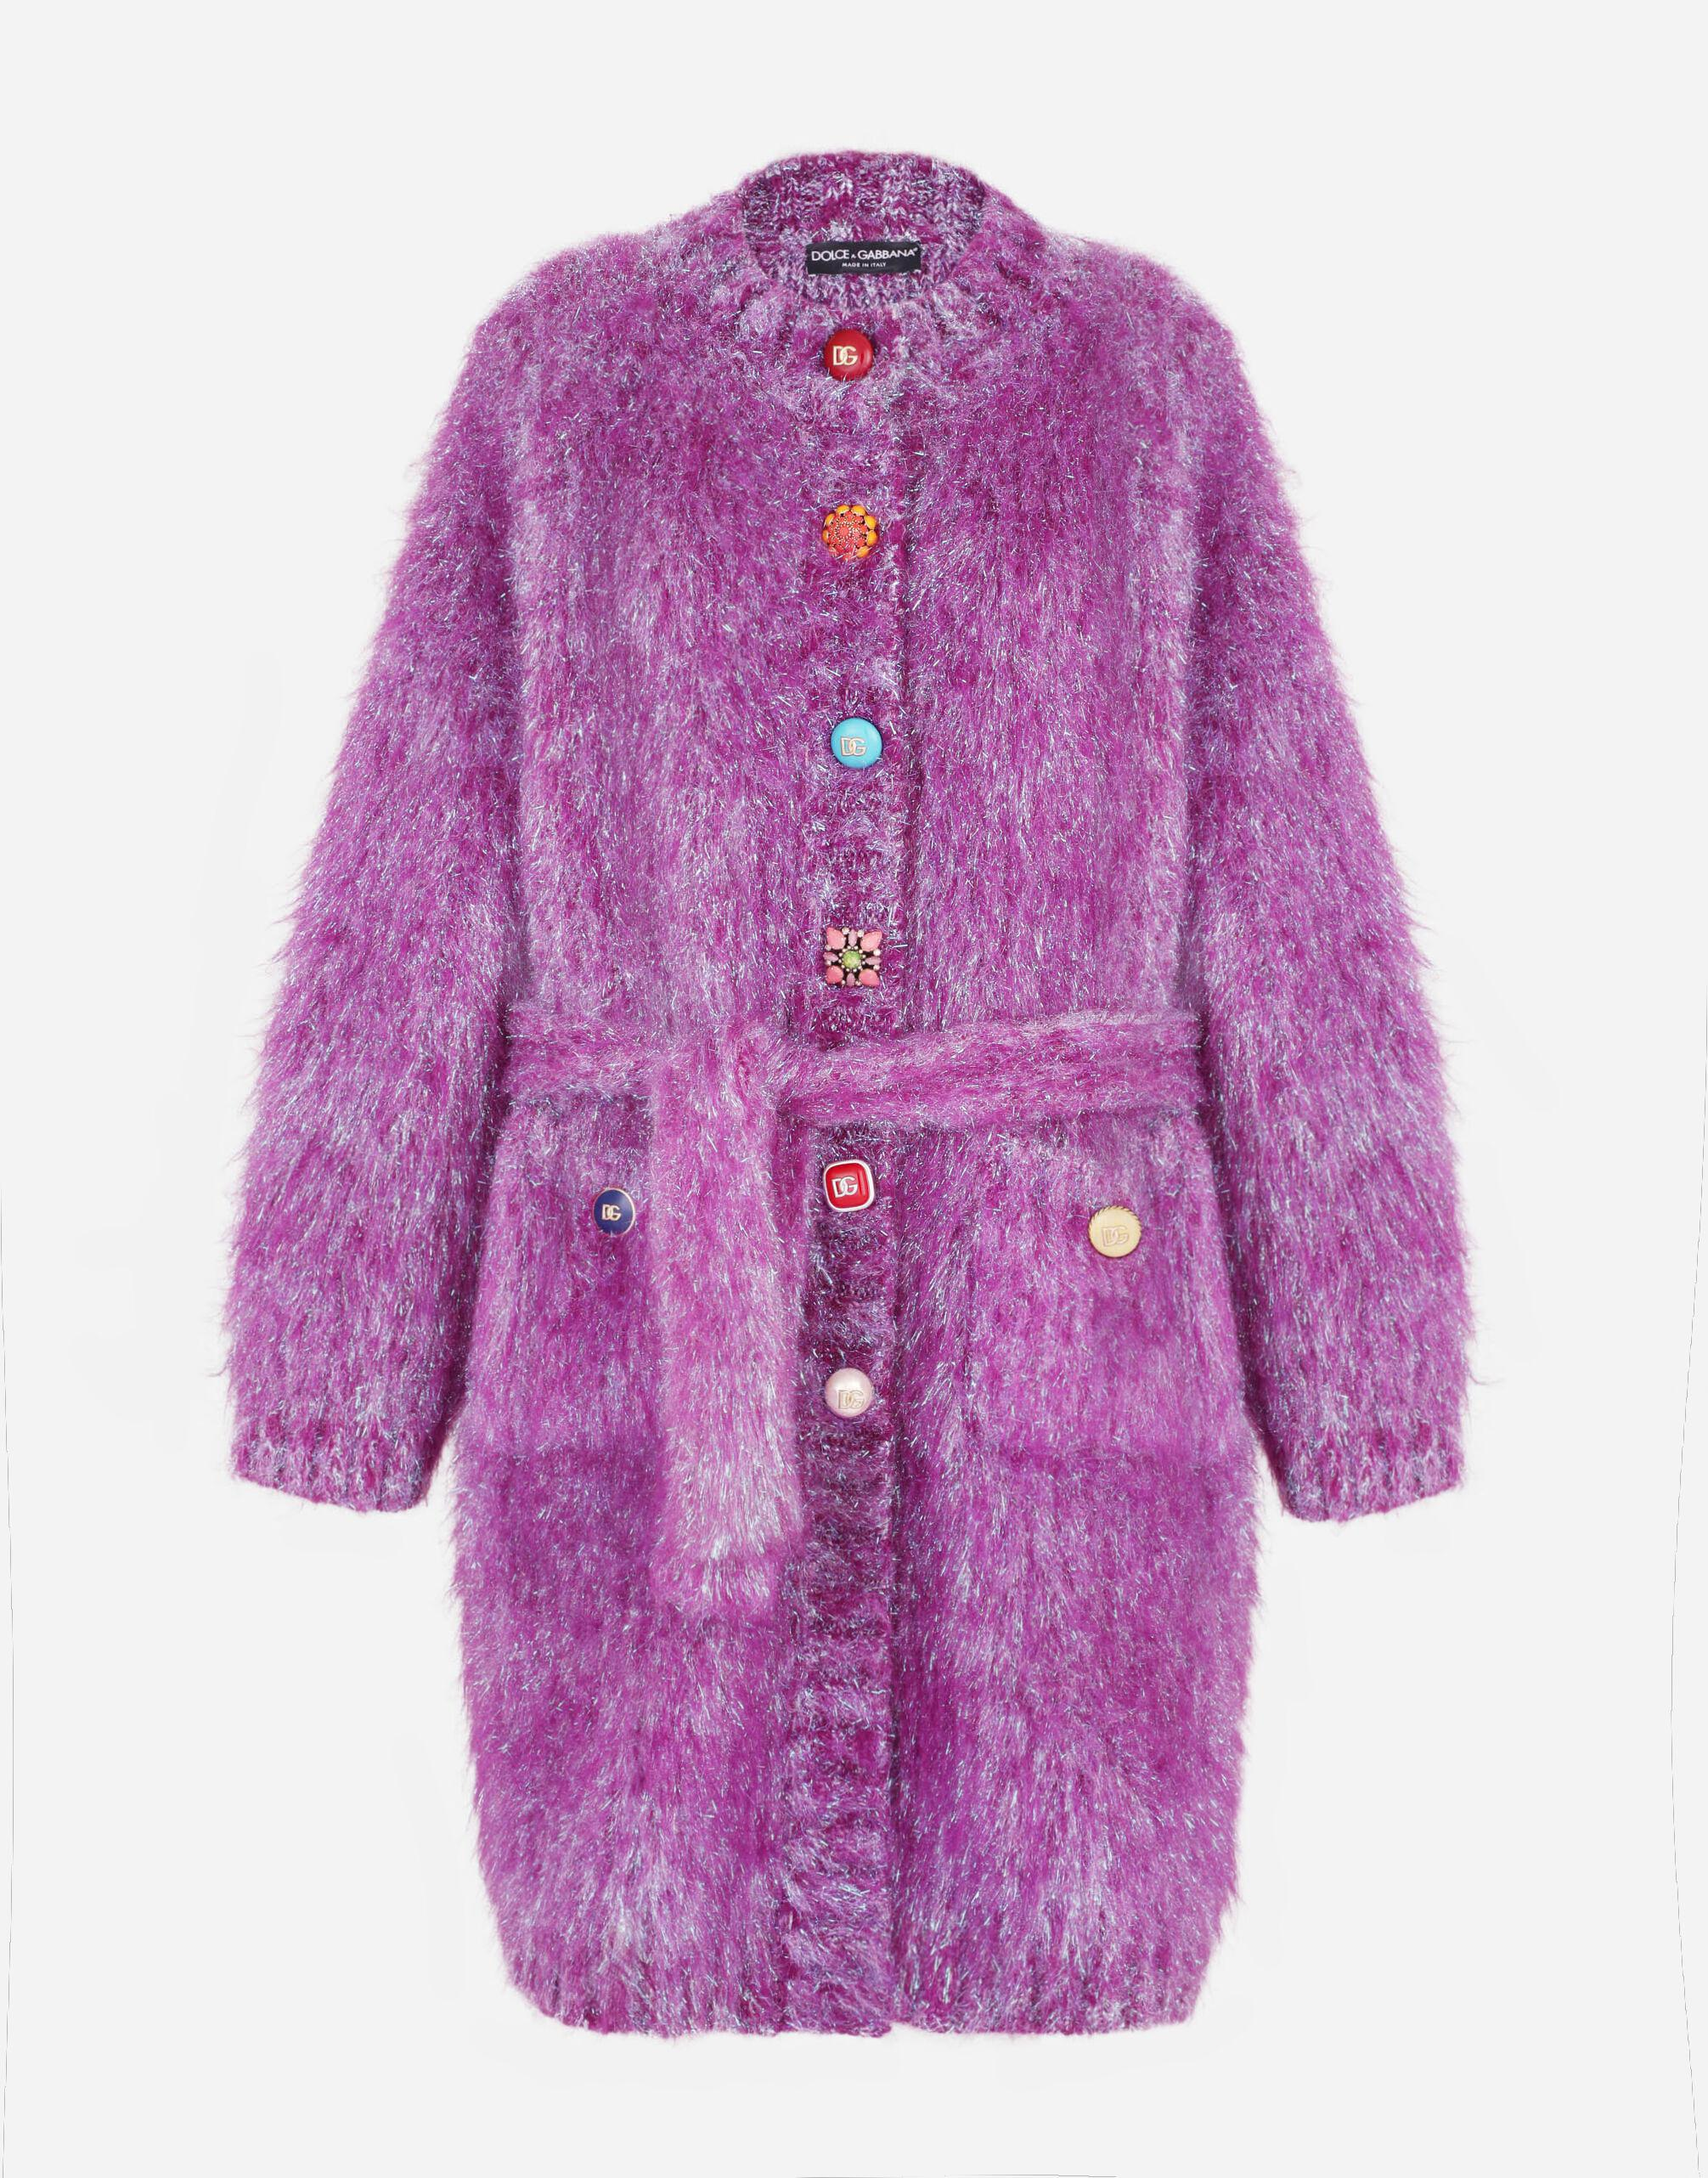 Knit coat with bejeweled buttons 4